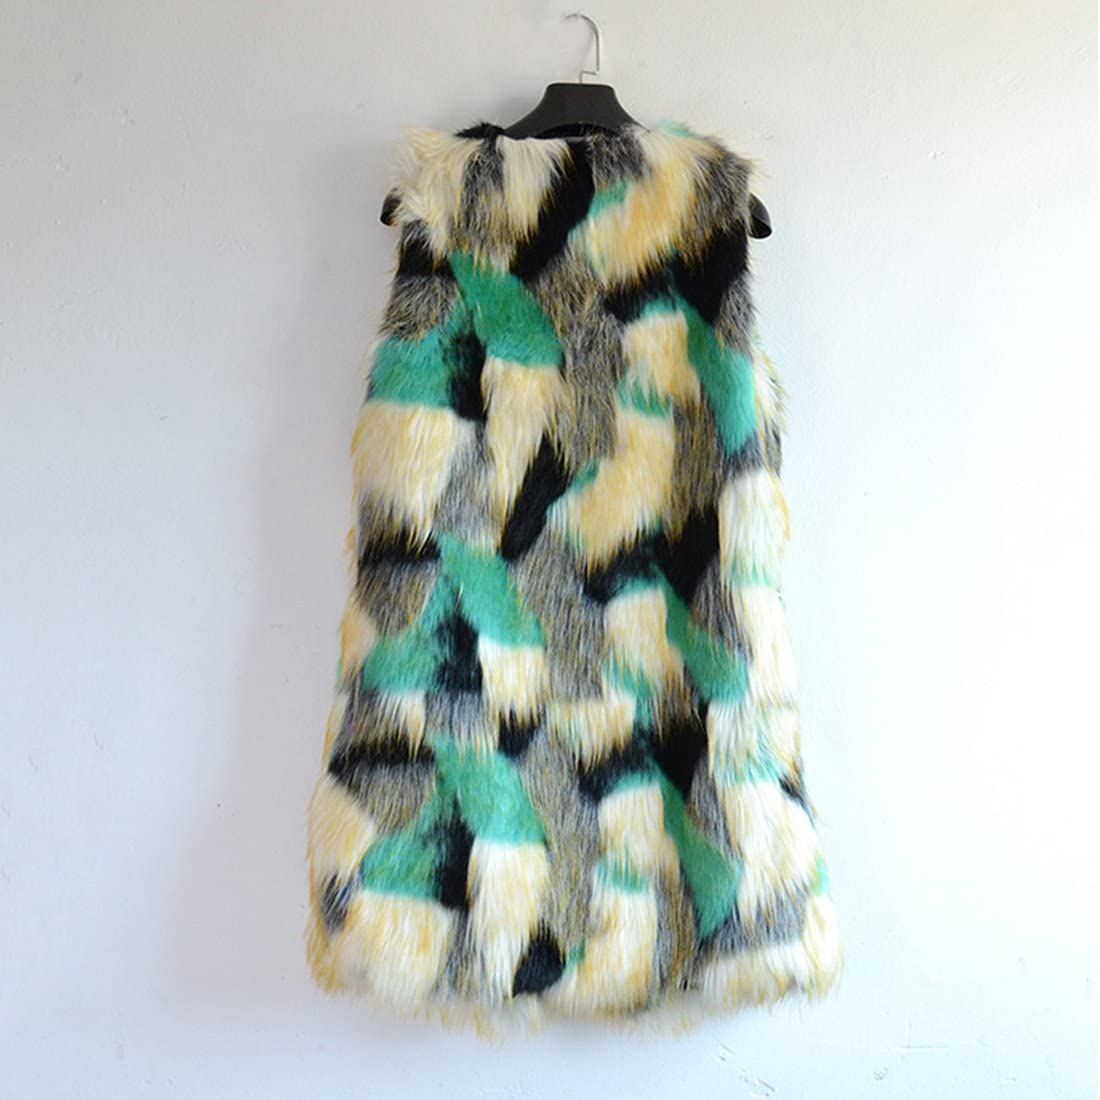 JTENGYAO Womens Faux Fur Sleeveless Coat Fur Vest Winter Parka Coat Sleeveless Jacket